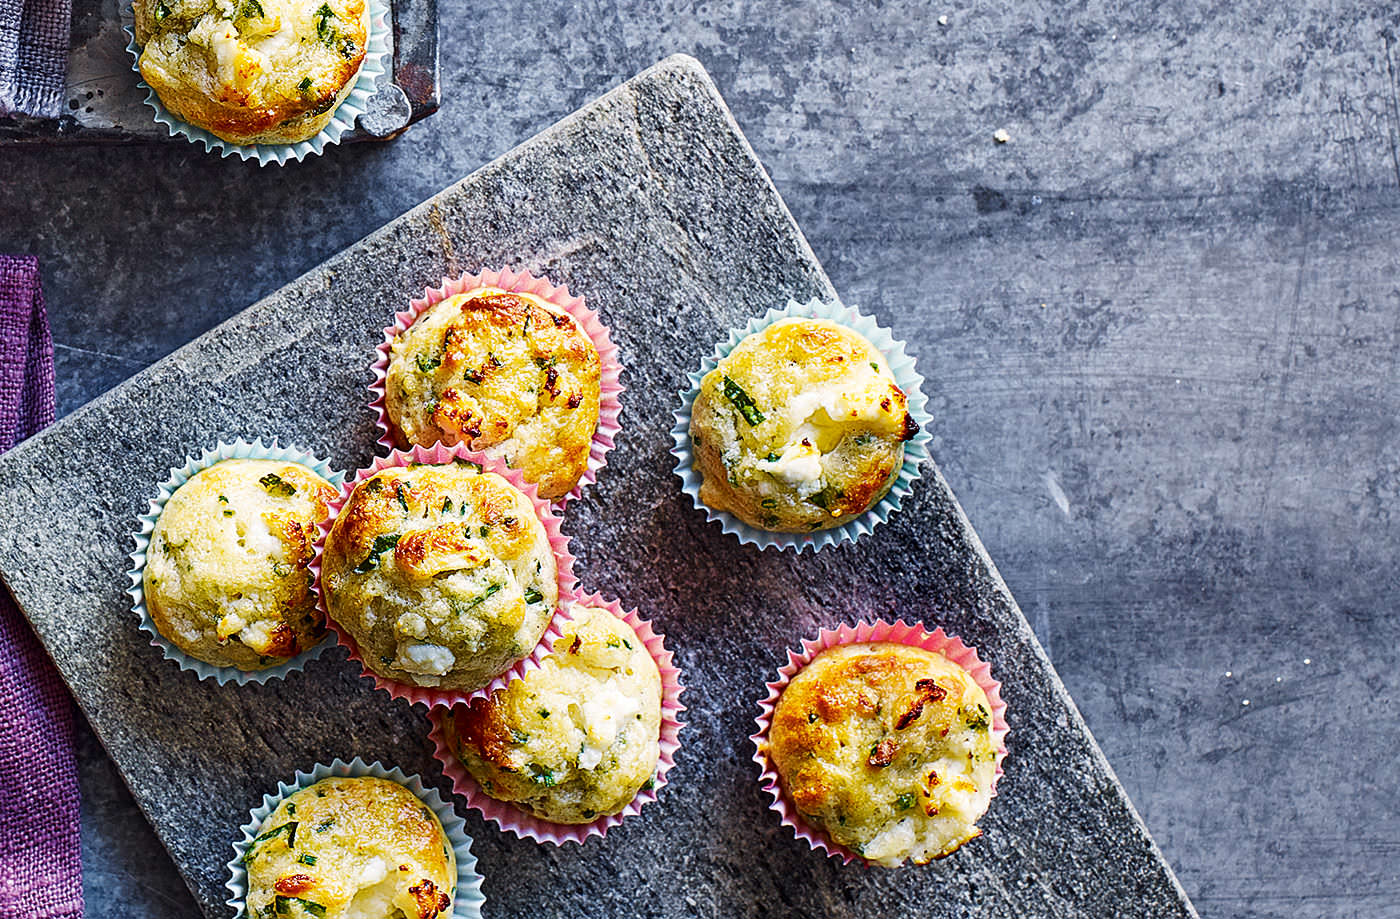 Goat's cheese, spinach and herb mini muffins recipe